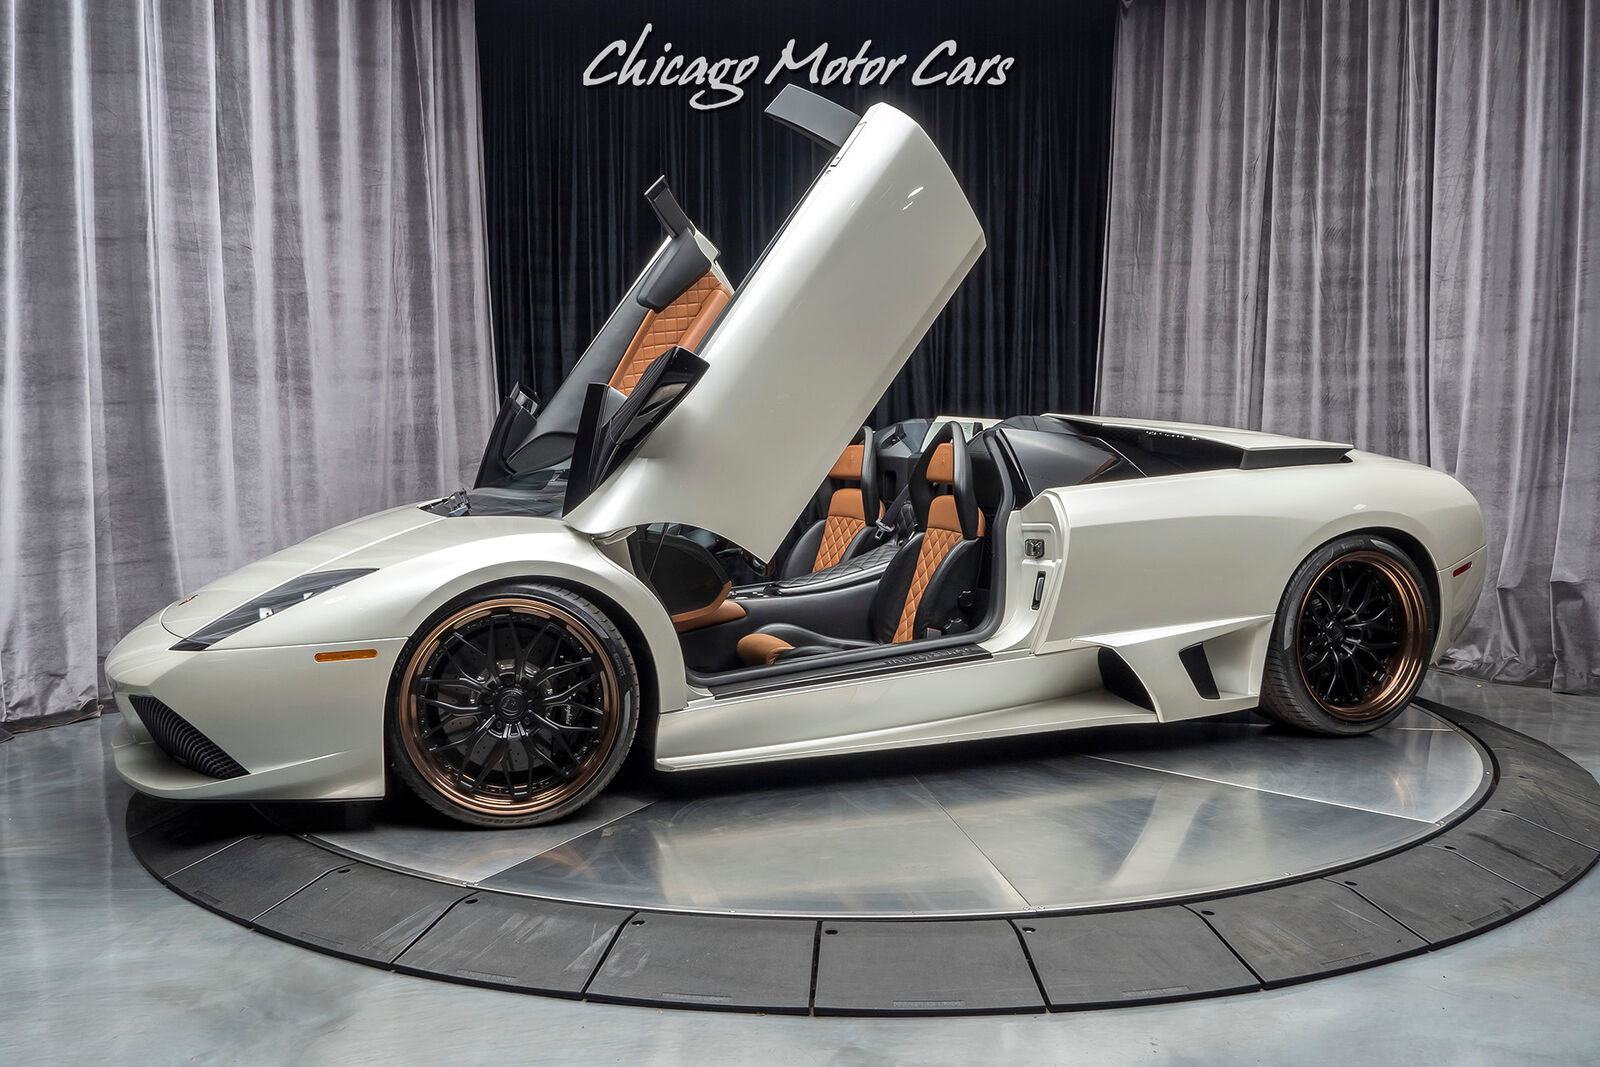 2008 Lamborghini Murcielago LP640 Roadster 7k Miles! Incredible and Rare Color 2008 Lamborghini Murcielago LP640 Roadster 7k Miles! Incredible and Rare Color B